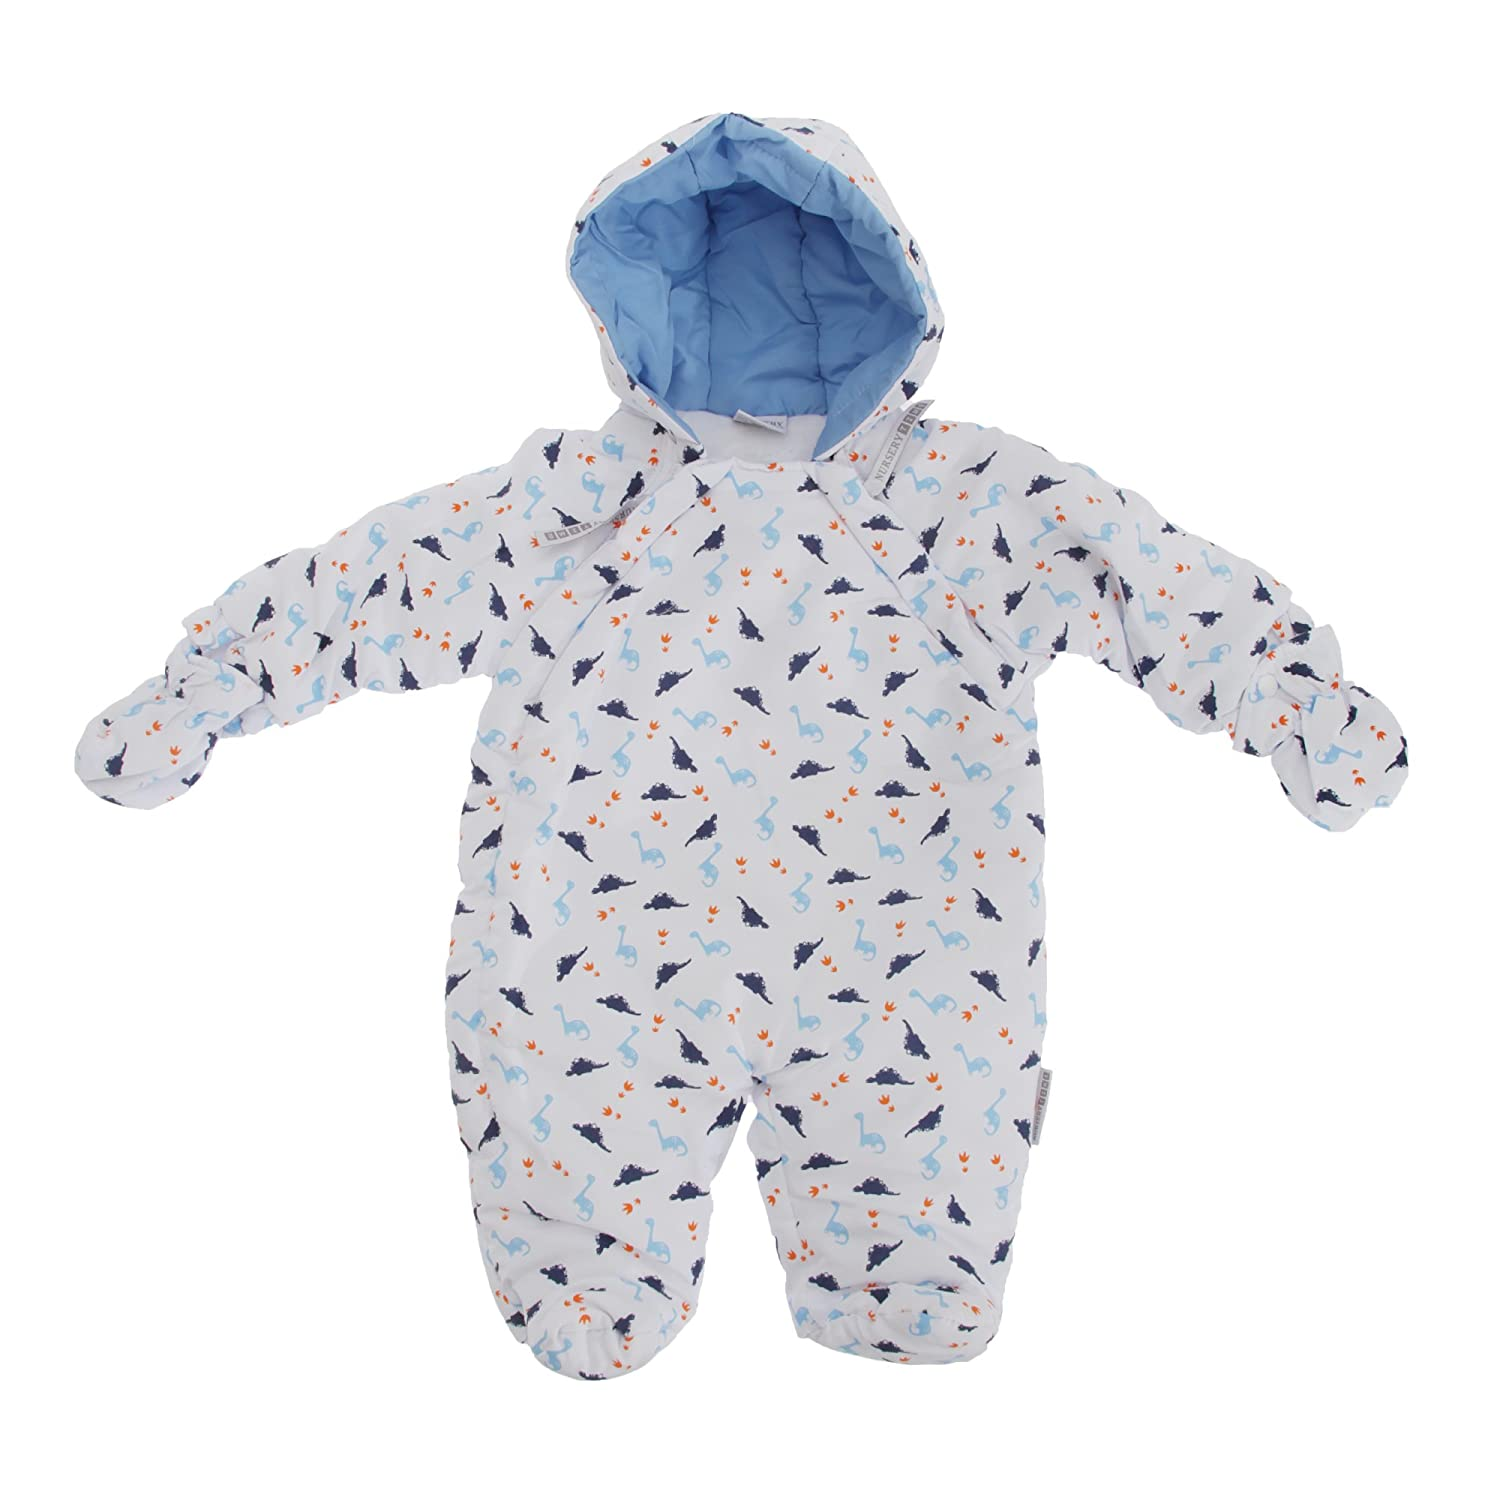 Baby Boys Dinosaur Pattern All In One Hooded Winter Snowsuit (Newborn) (White) Universal Textiles UTBABY991_8